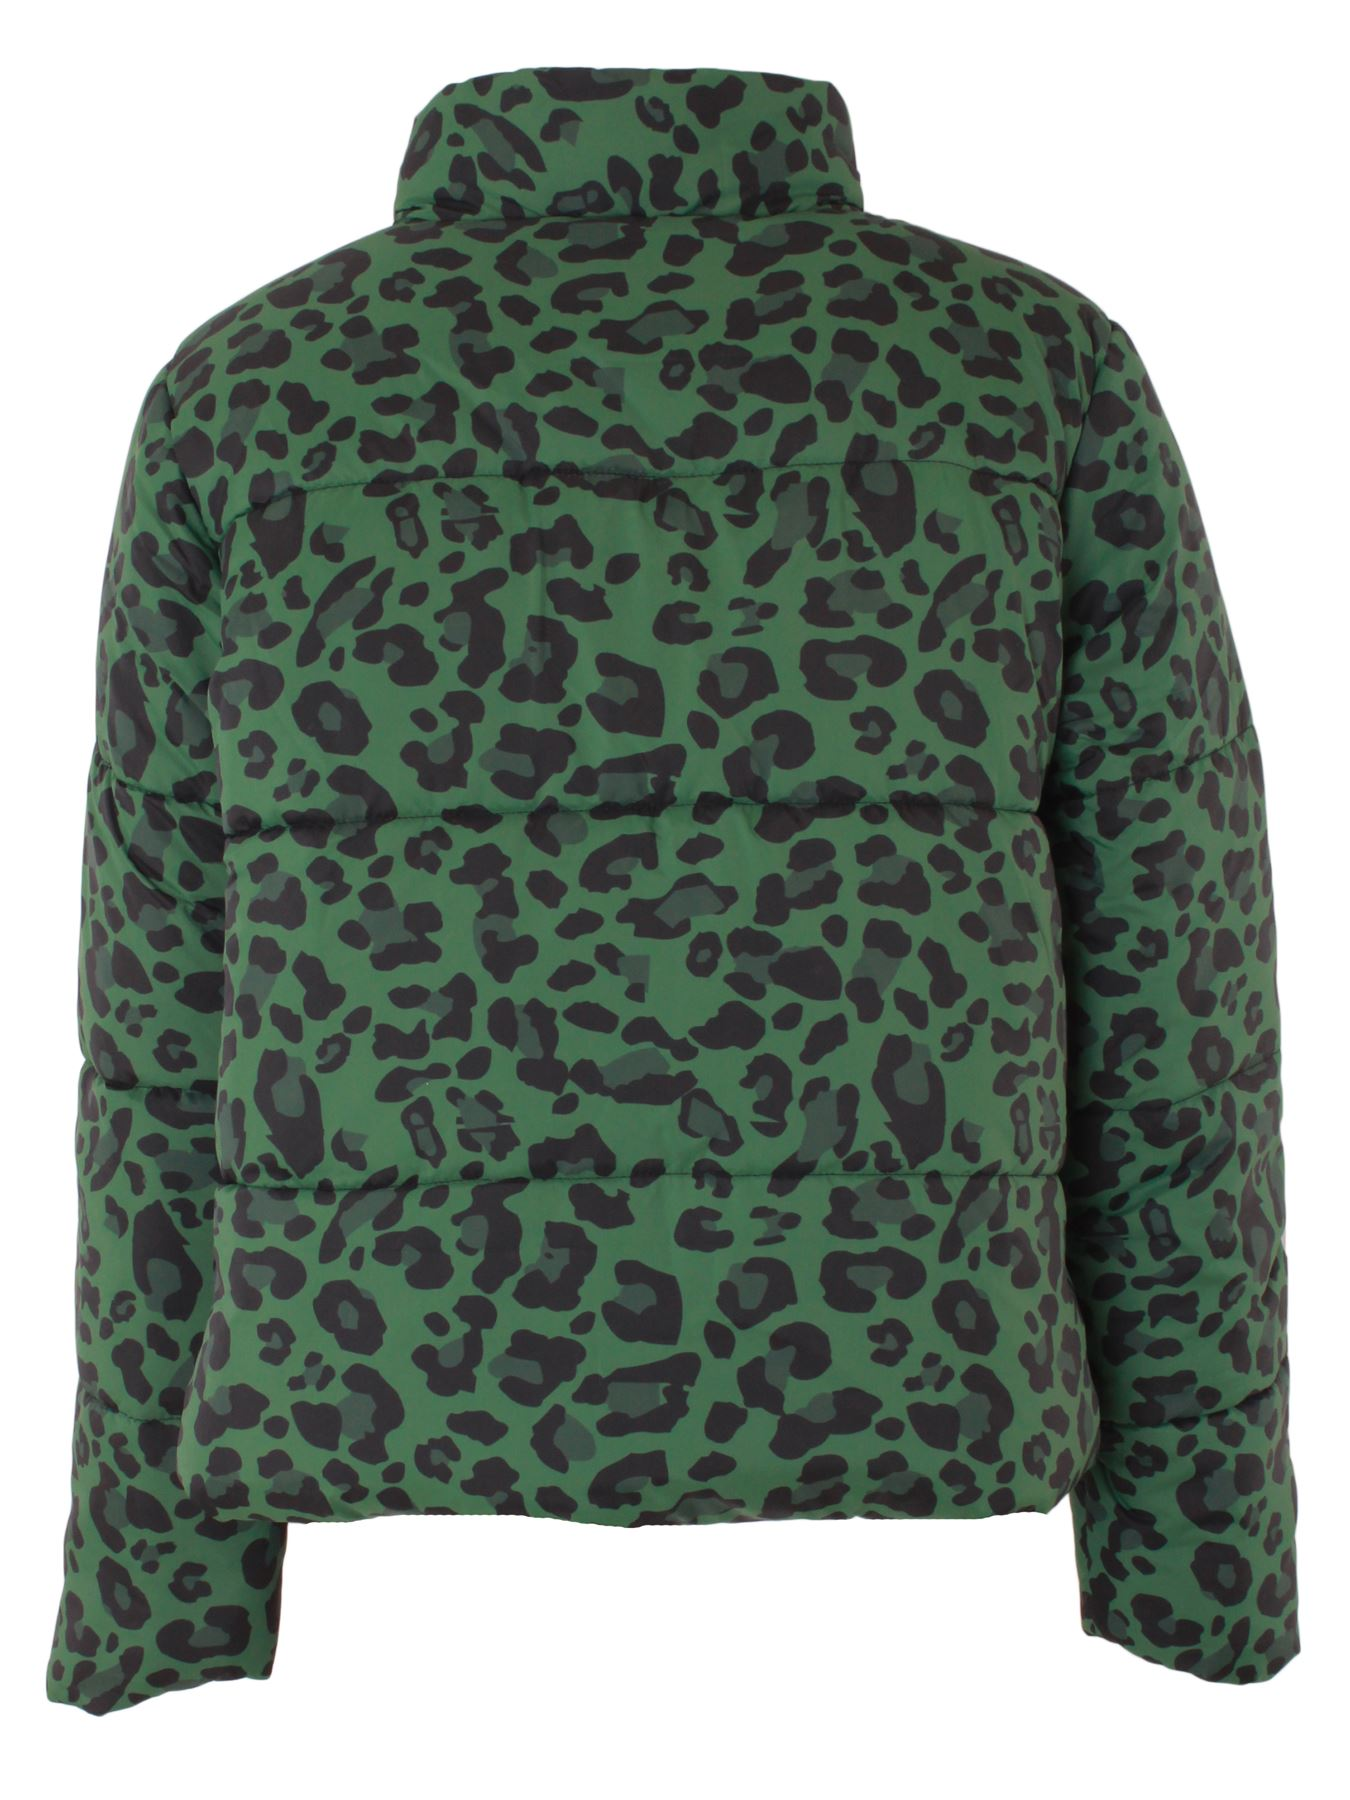 Ladies Jacket Womens Leopard Printed Bubble Padded Warm Coat Zip Up Long Sleeves